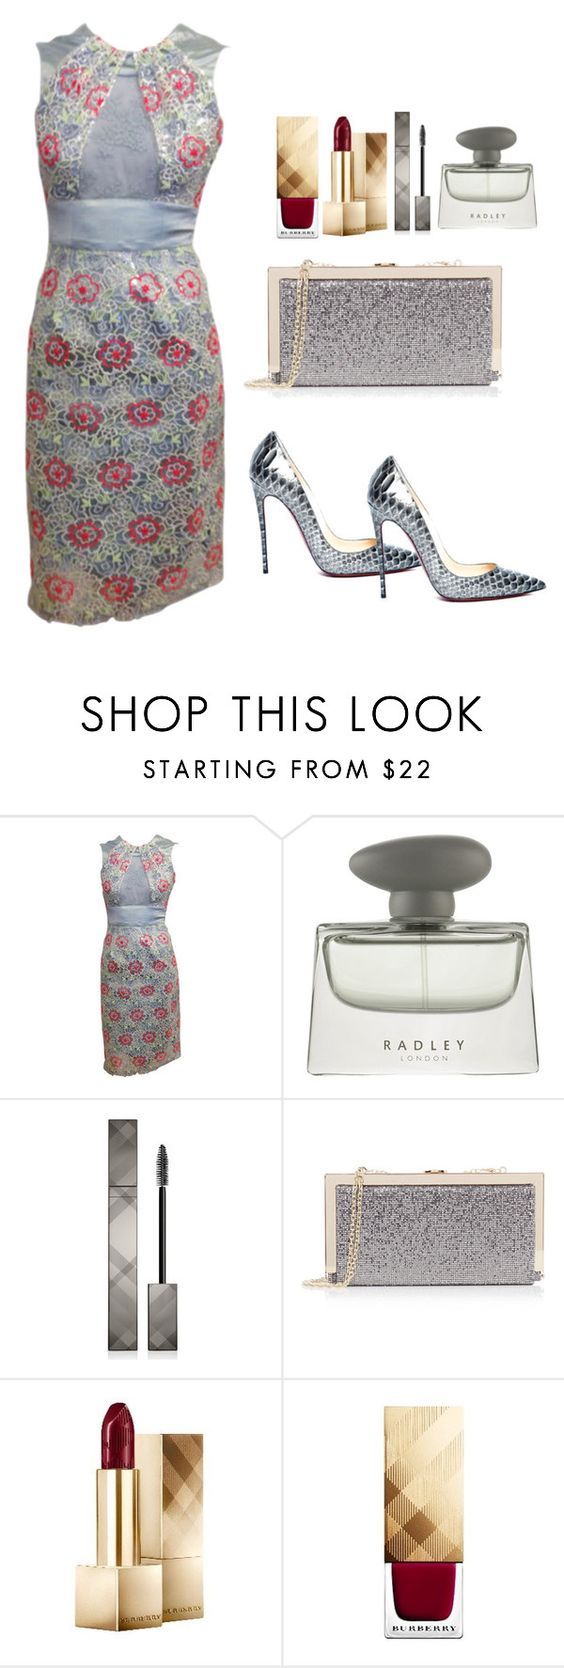 """SPRING..... FLORAL !!!"" by betty-sanga ❤ liked on Polyvore featuring Radley, Burberry and Oasis"